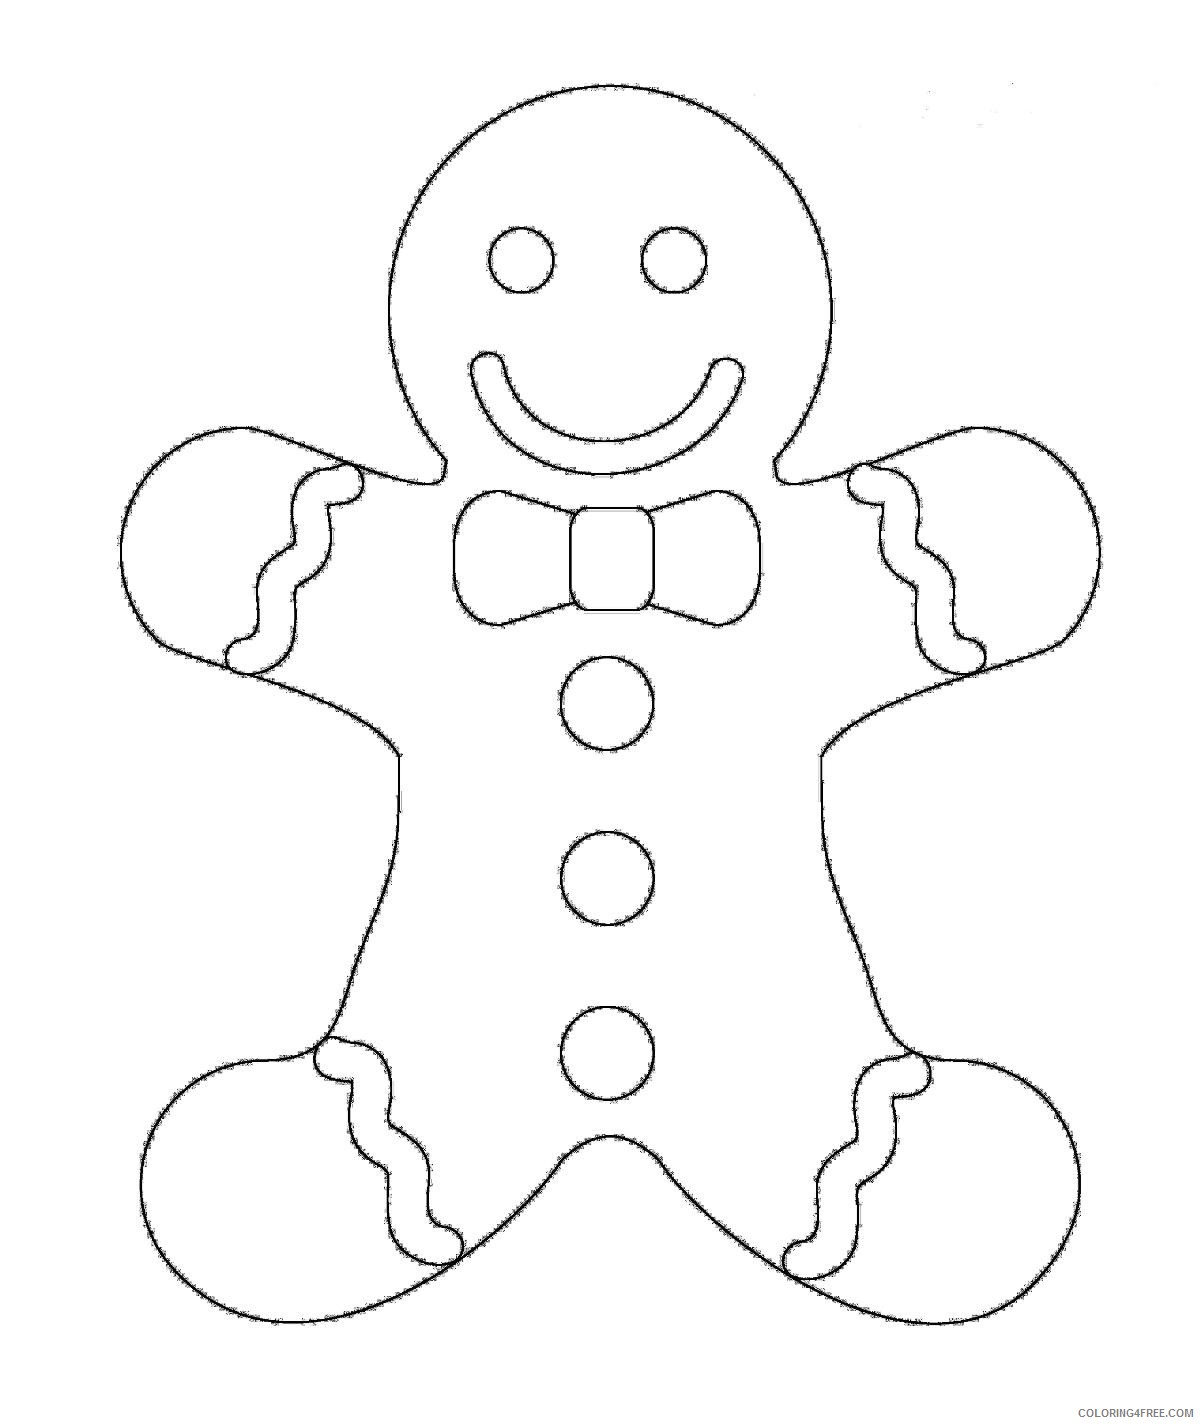 Free Printable Gingerbread Man Coloring Pages For Kids | 1424x1200